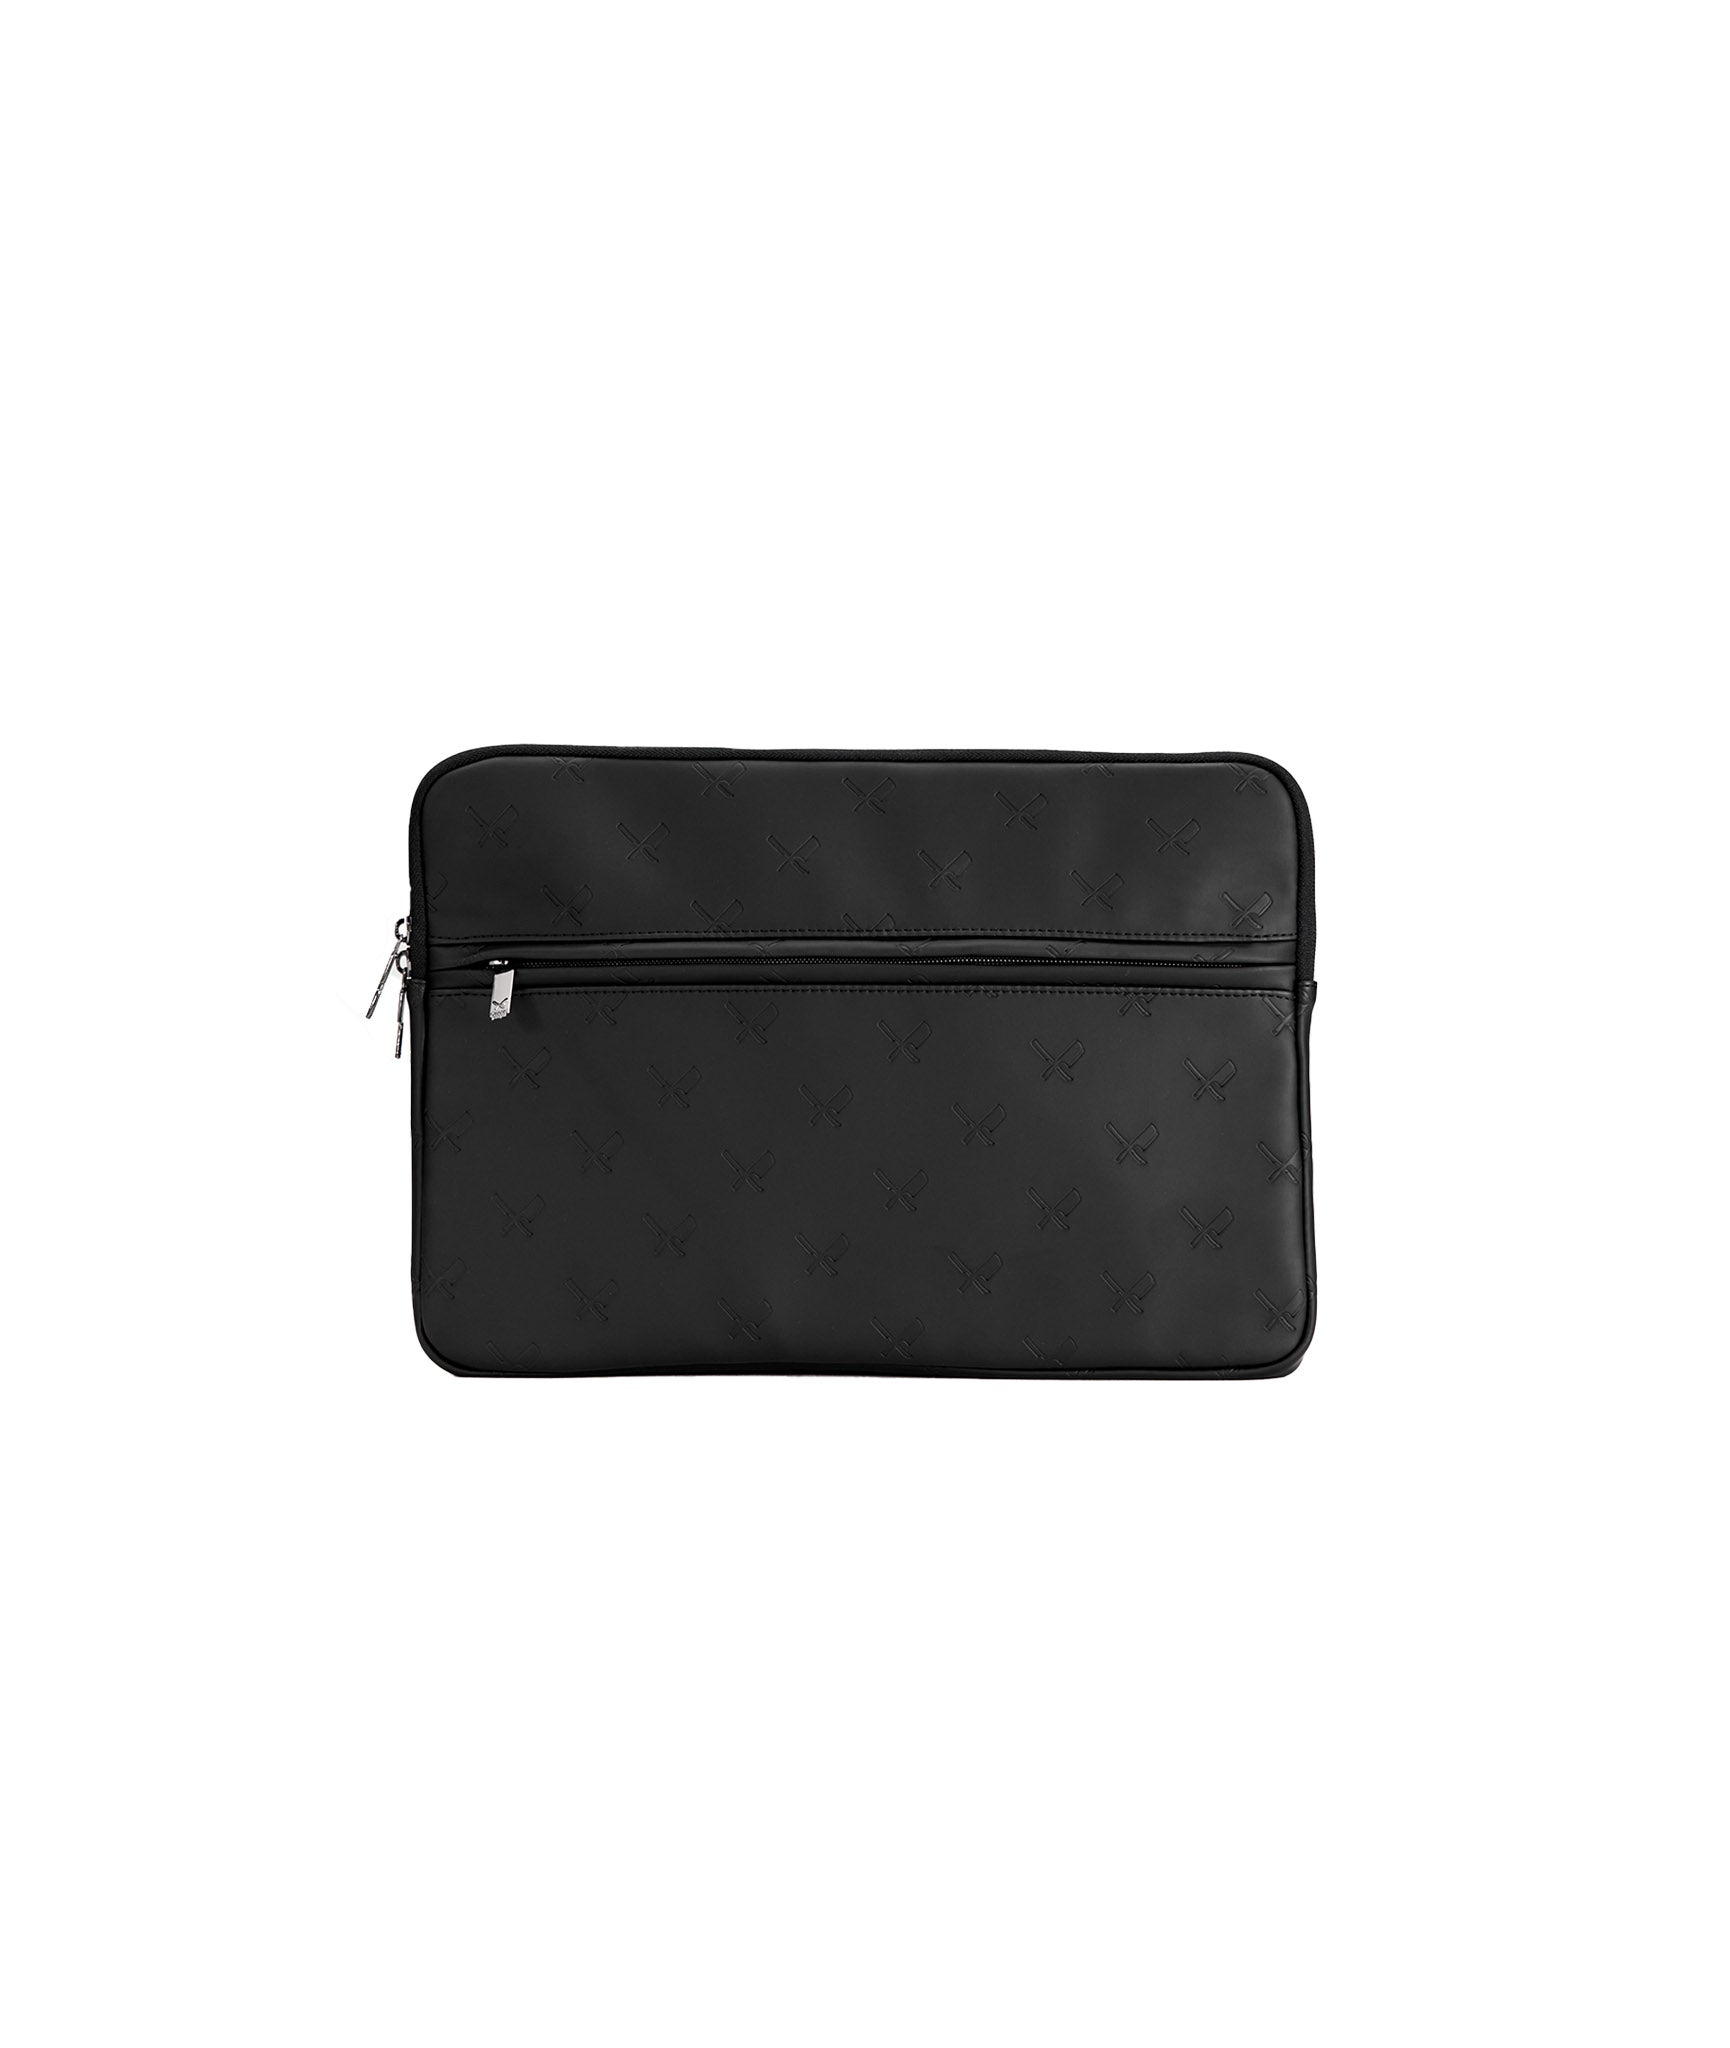 distorted people - Laptop Sleeve Small